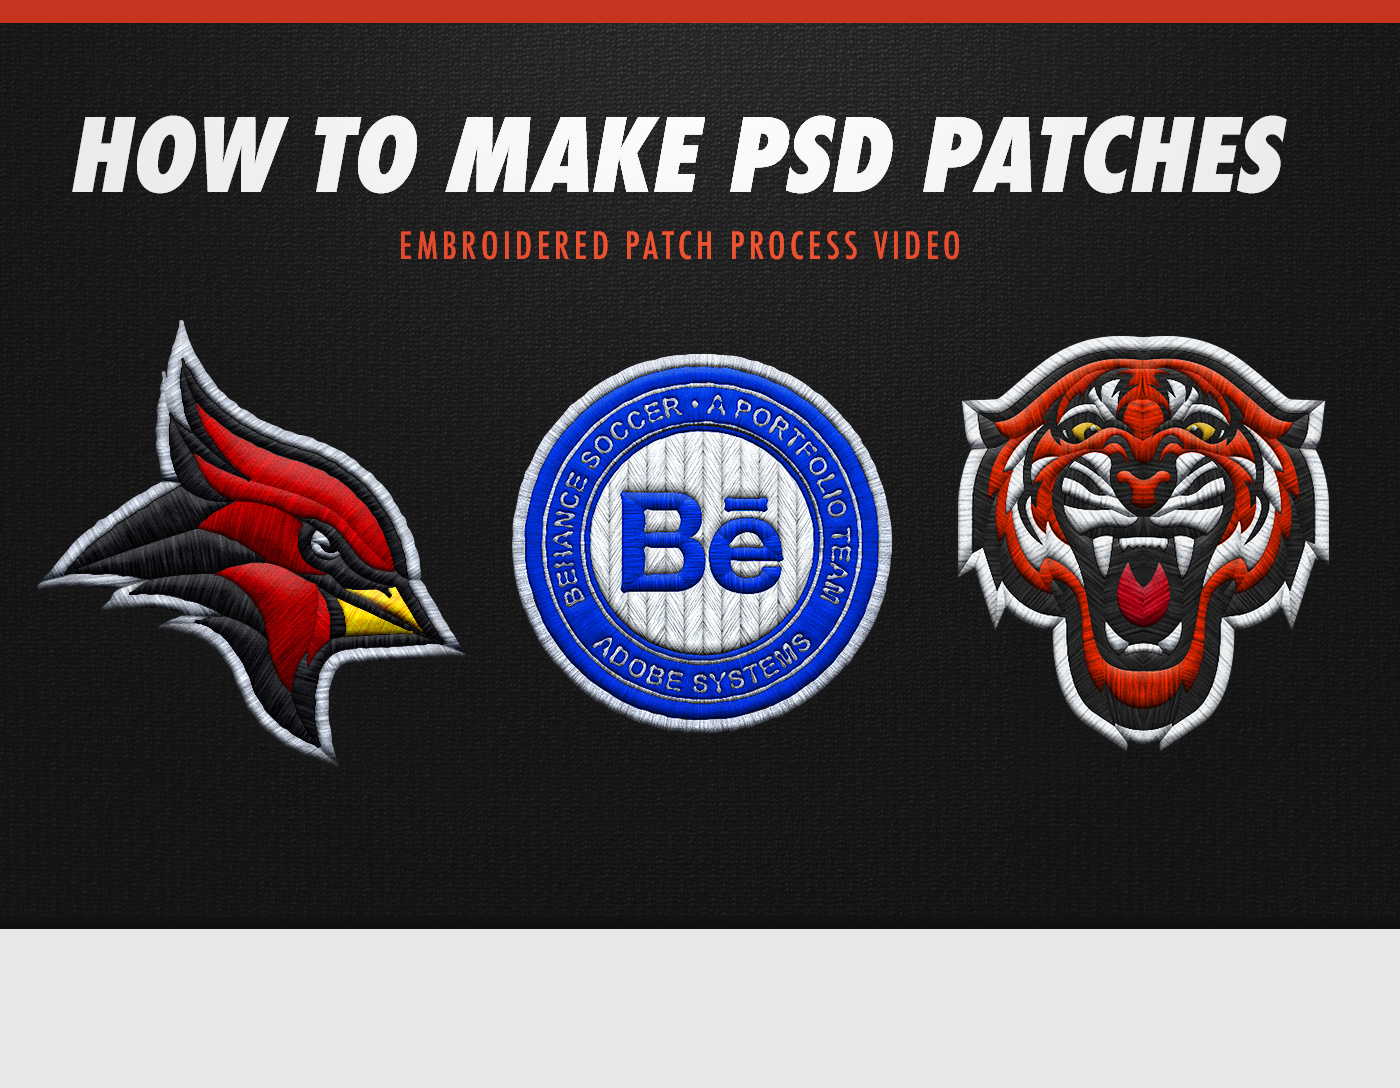 How To Make Psd Embroidered Patches Free Psd Assets On Behance